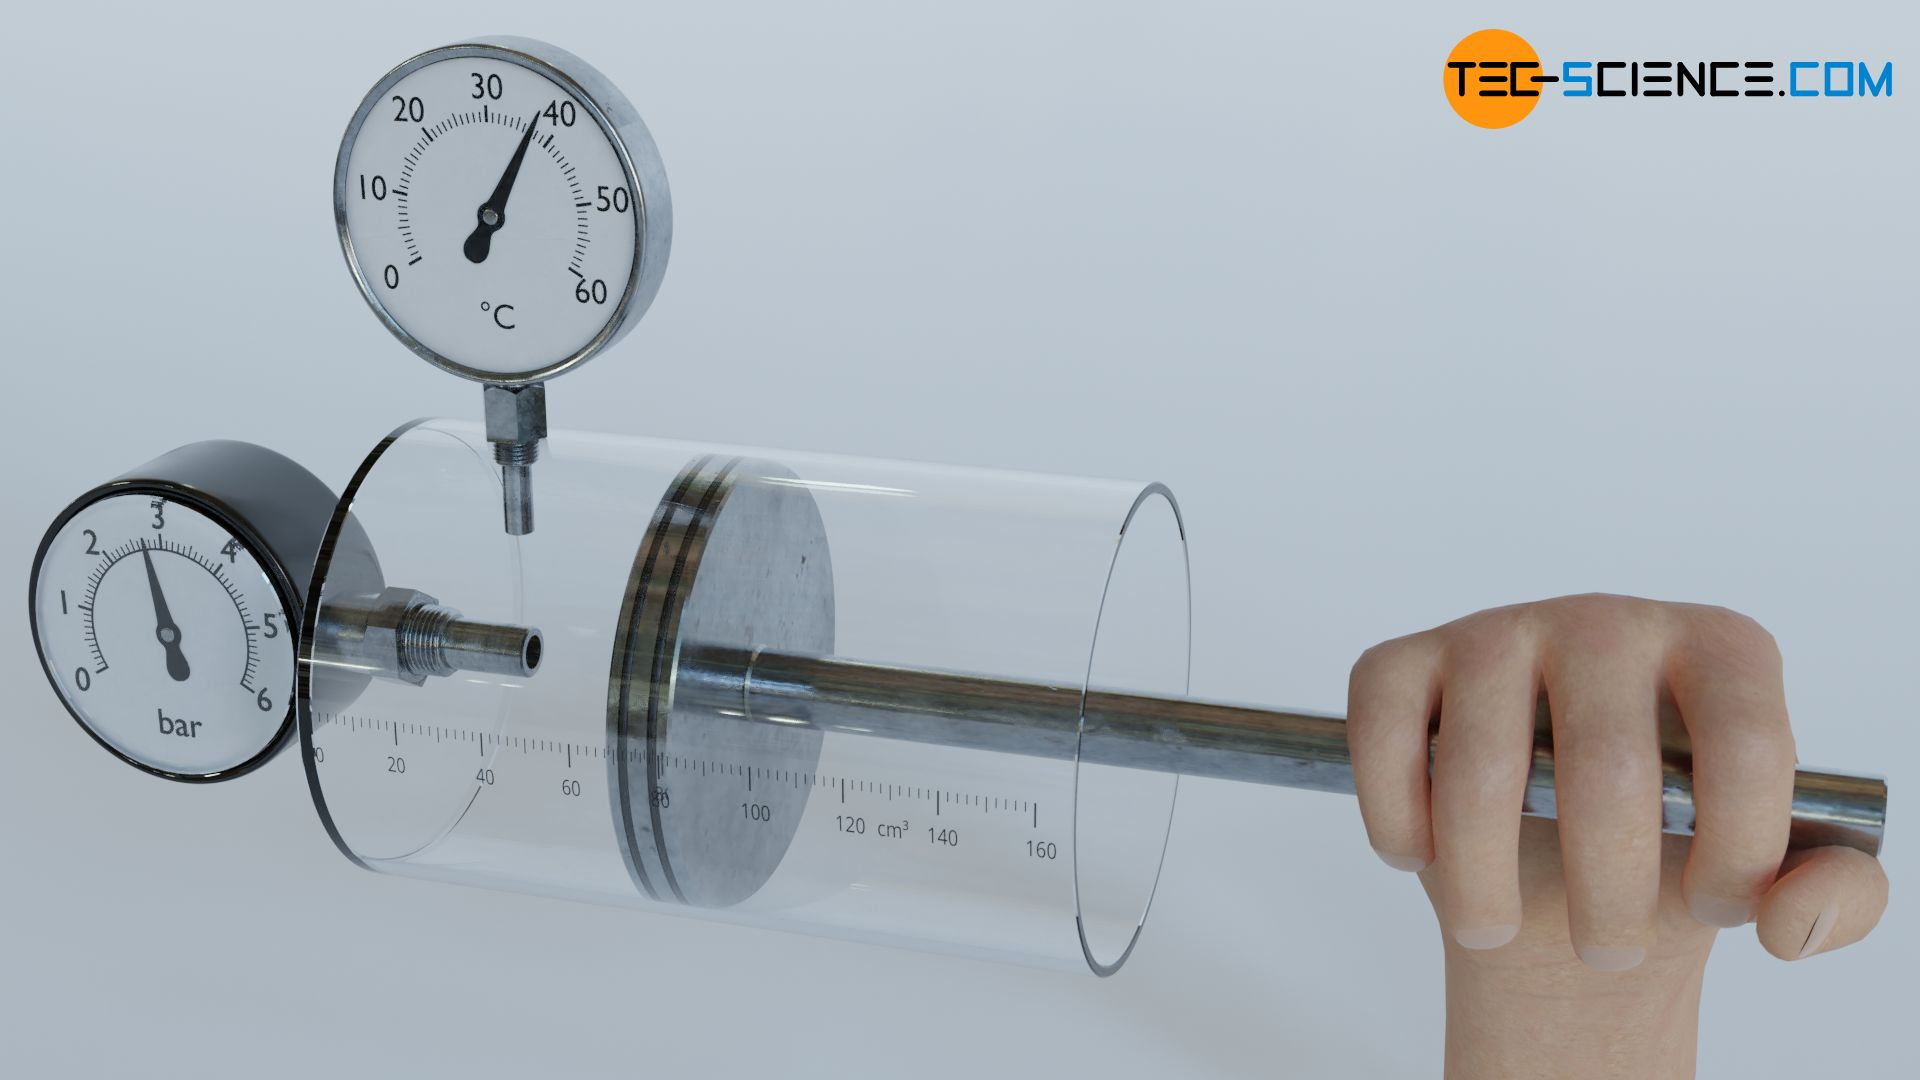 Compression of a gas in a cylinder